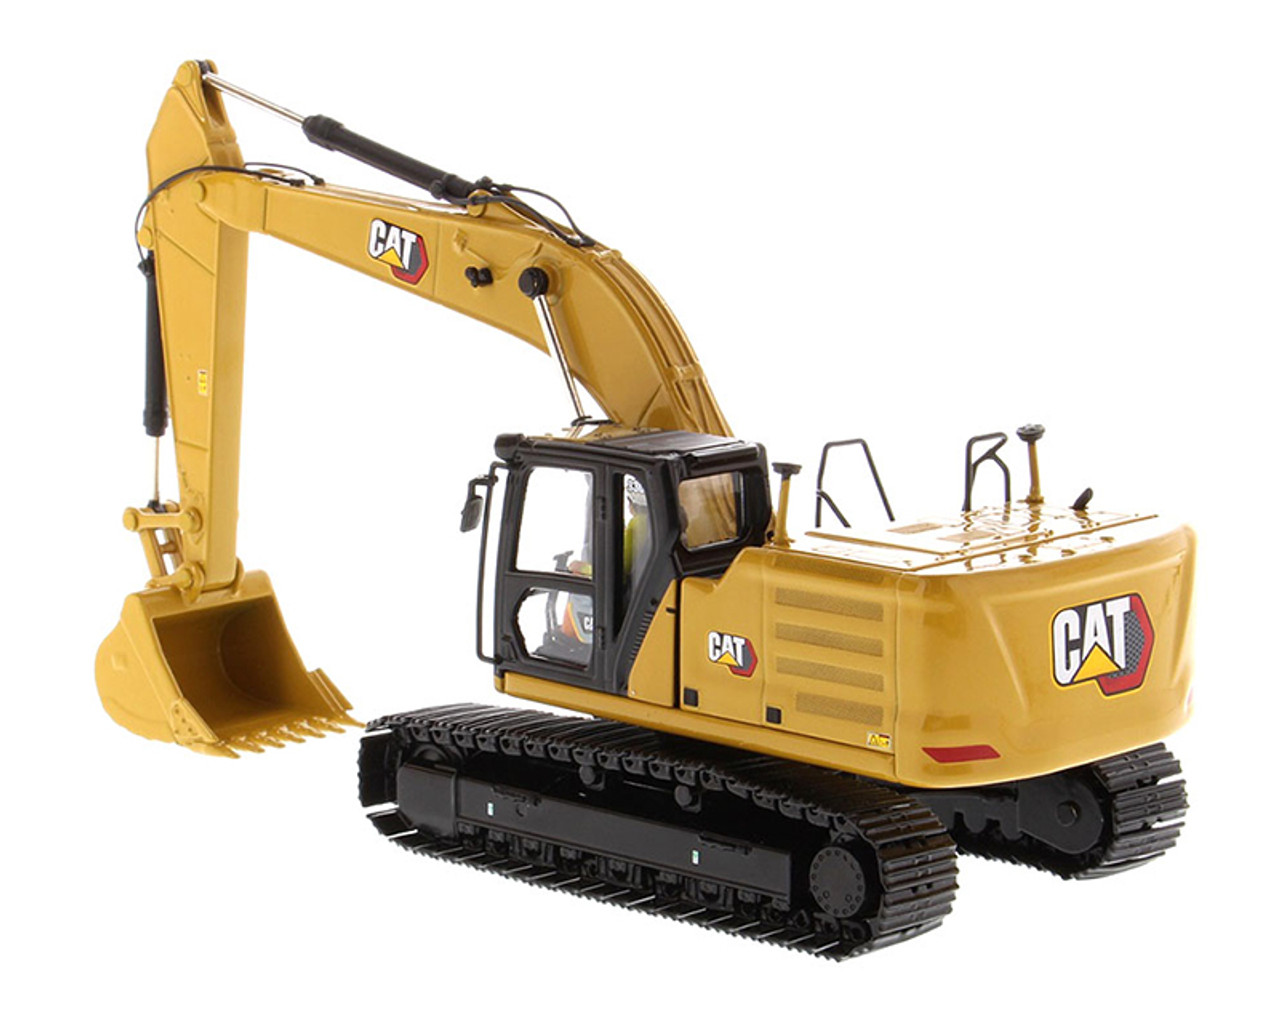 Caterpillar 330 Hydraulic Excavator - Next Generation